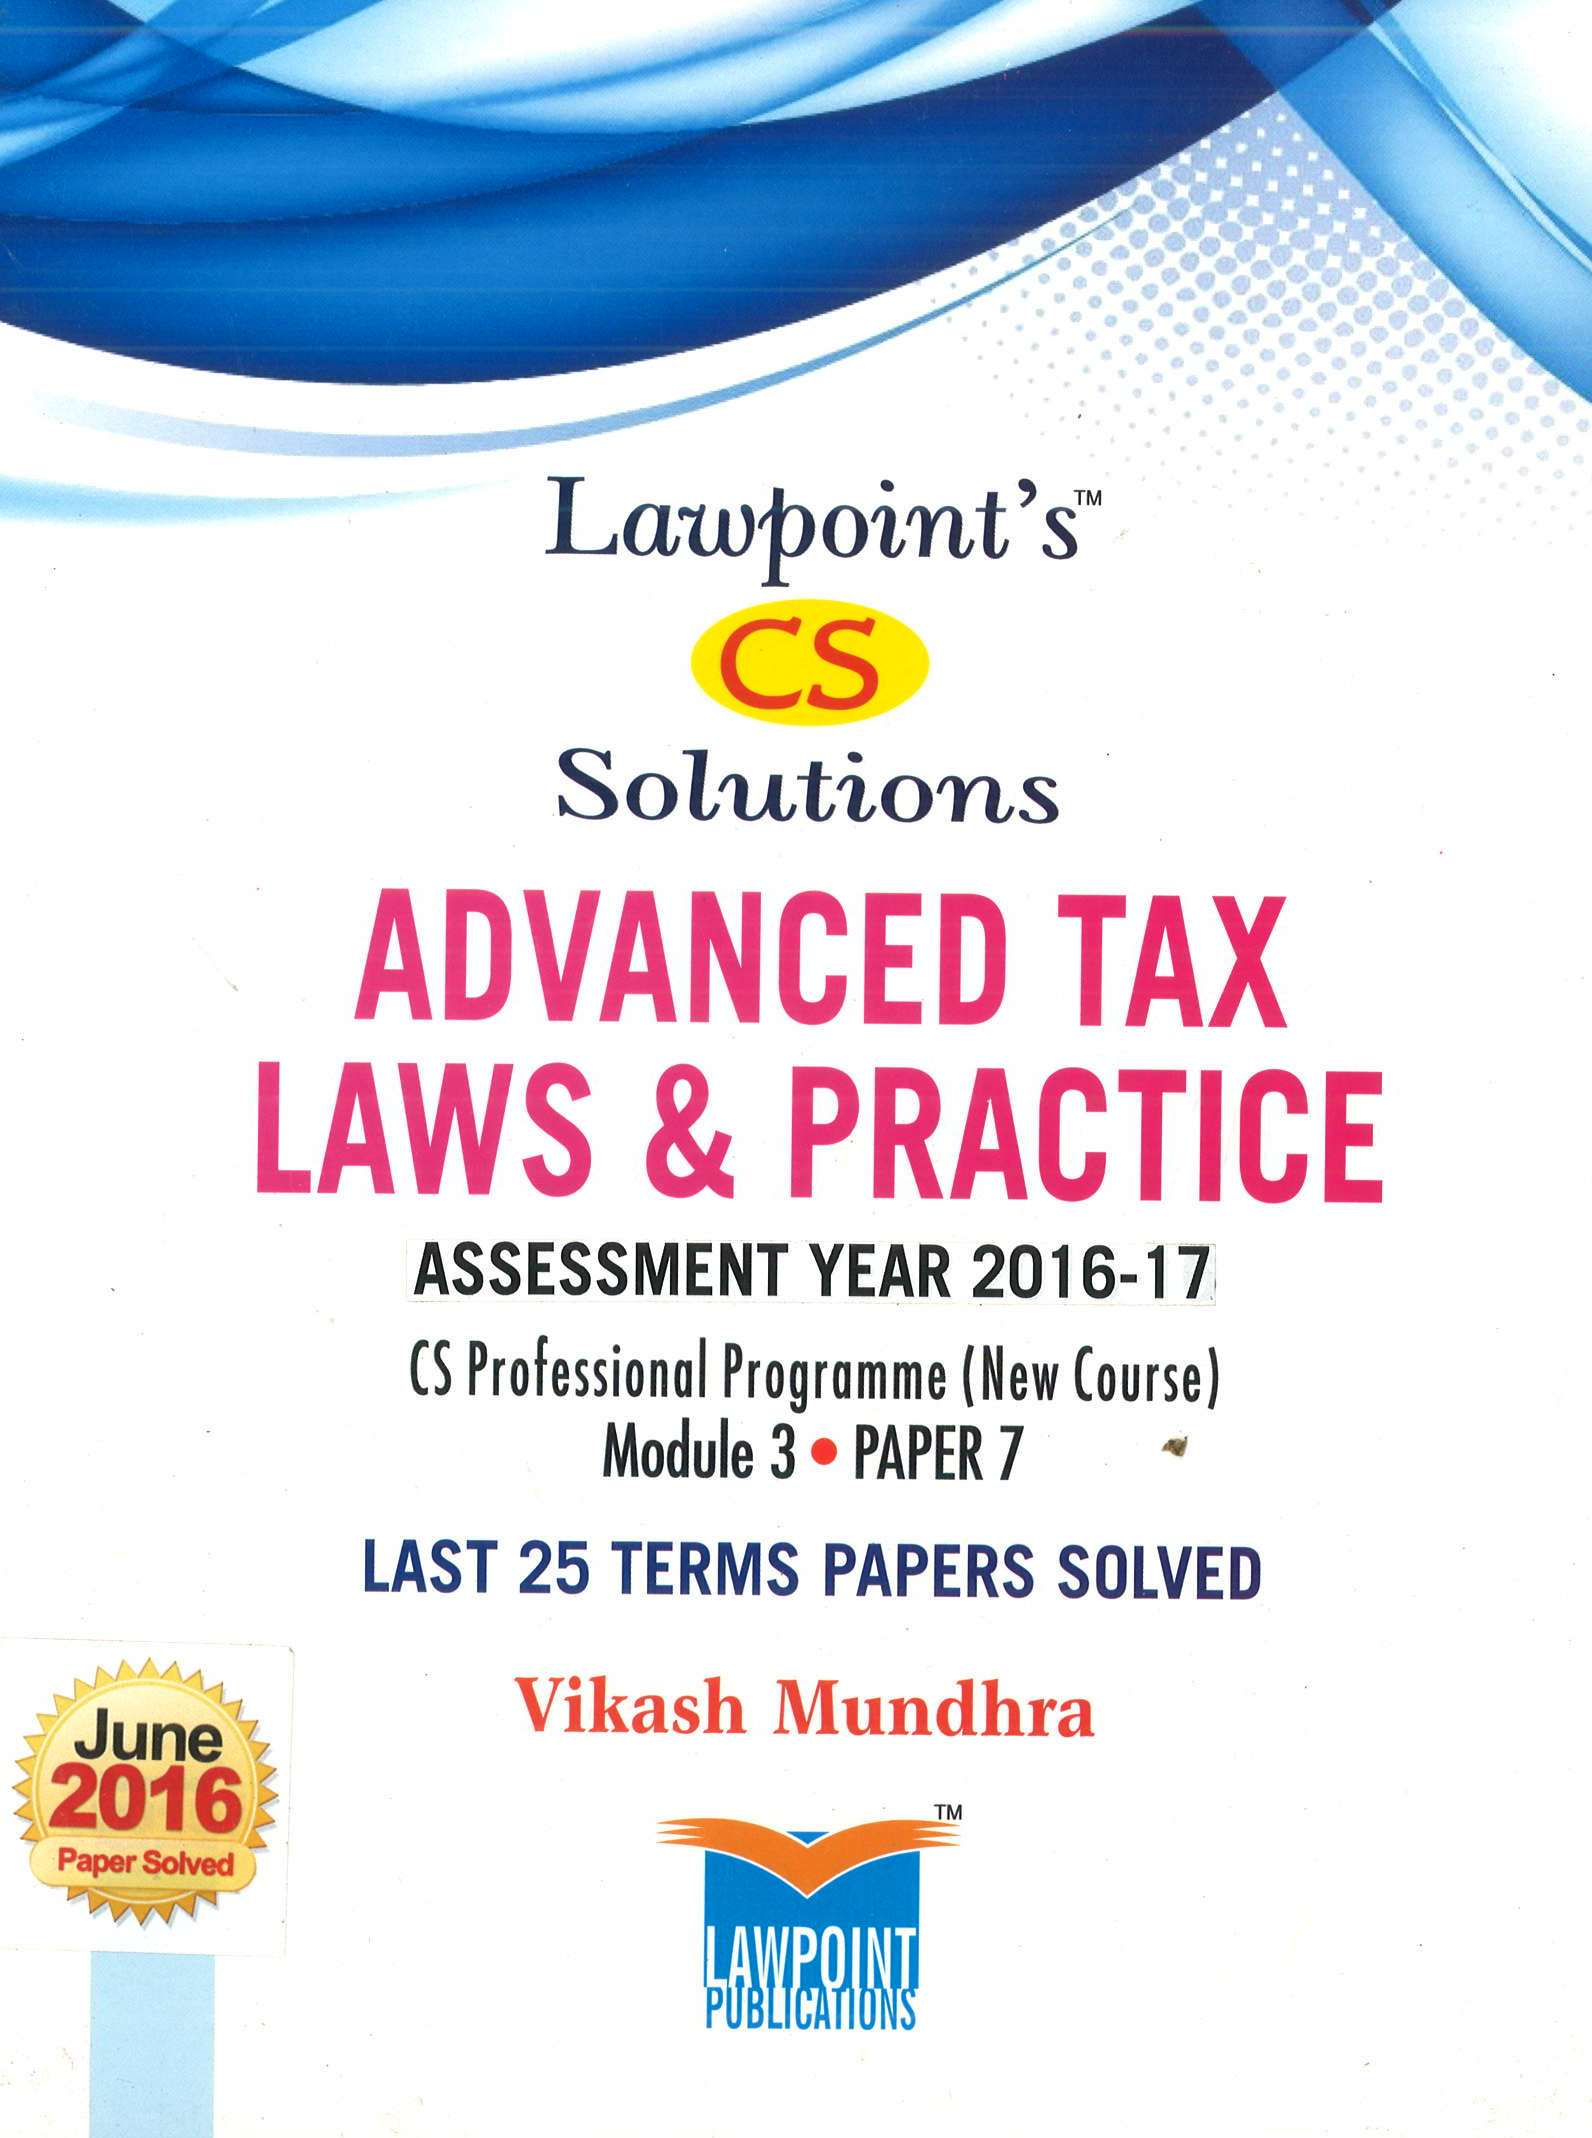 Lawpoint CS Solution Advanced Tax Laws and Practice (Assessment Year 2016-2017) for CS Professional Programme Module-3 Paper-7 by Vikash Mundhra (Lawpoint Publication) Edition 8th 2016